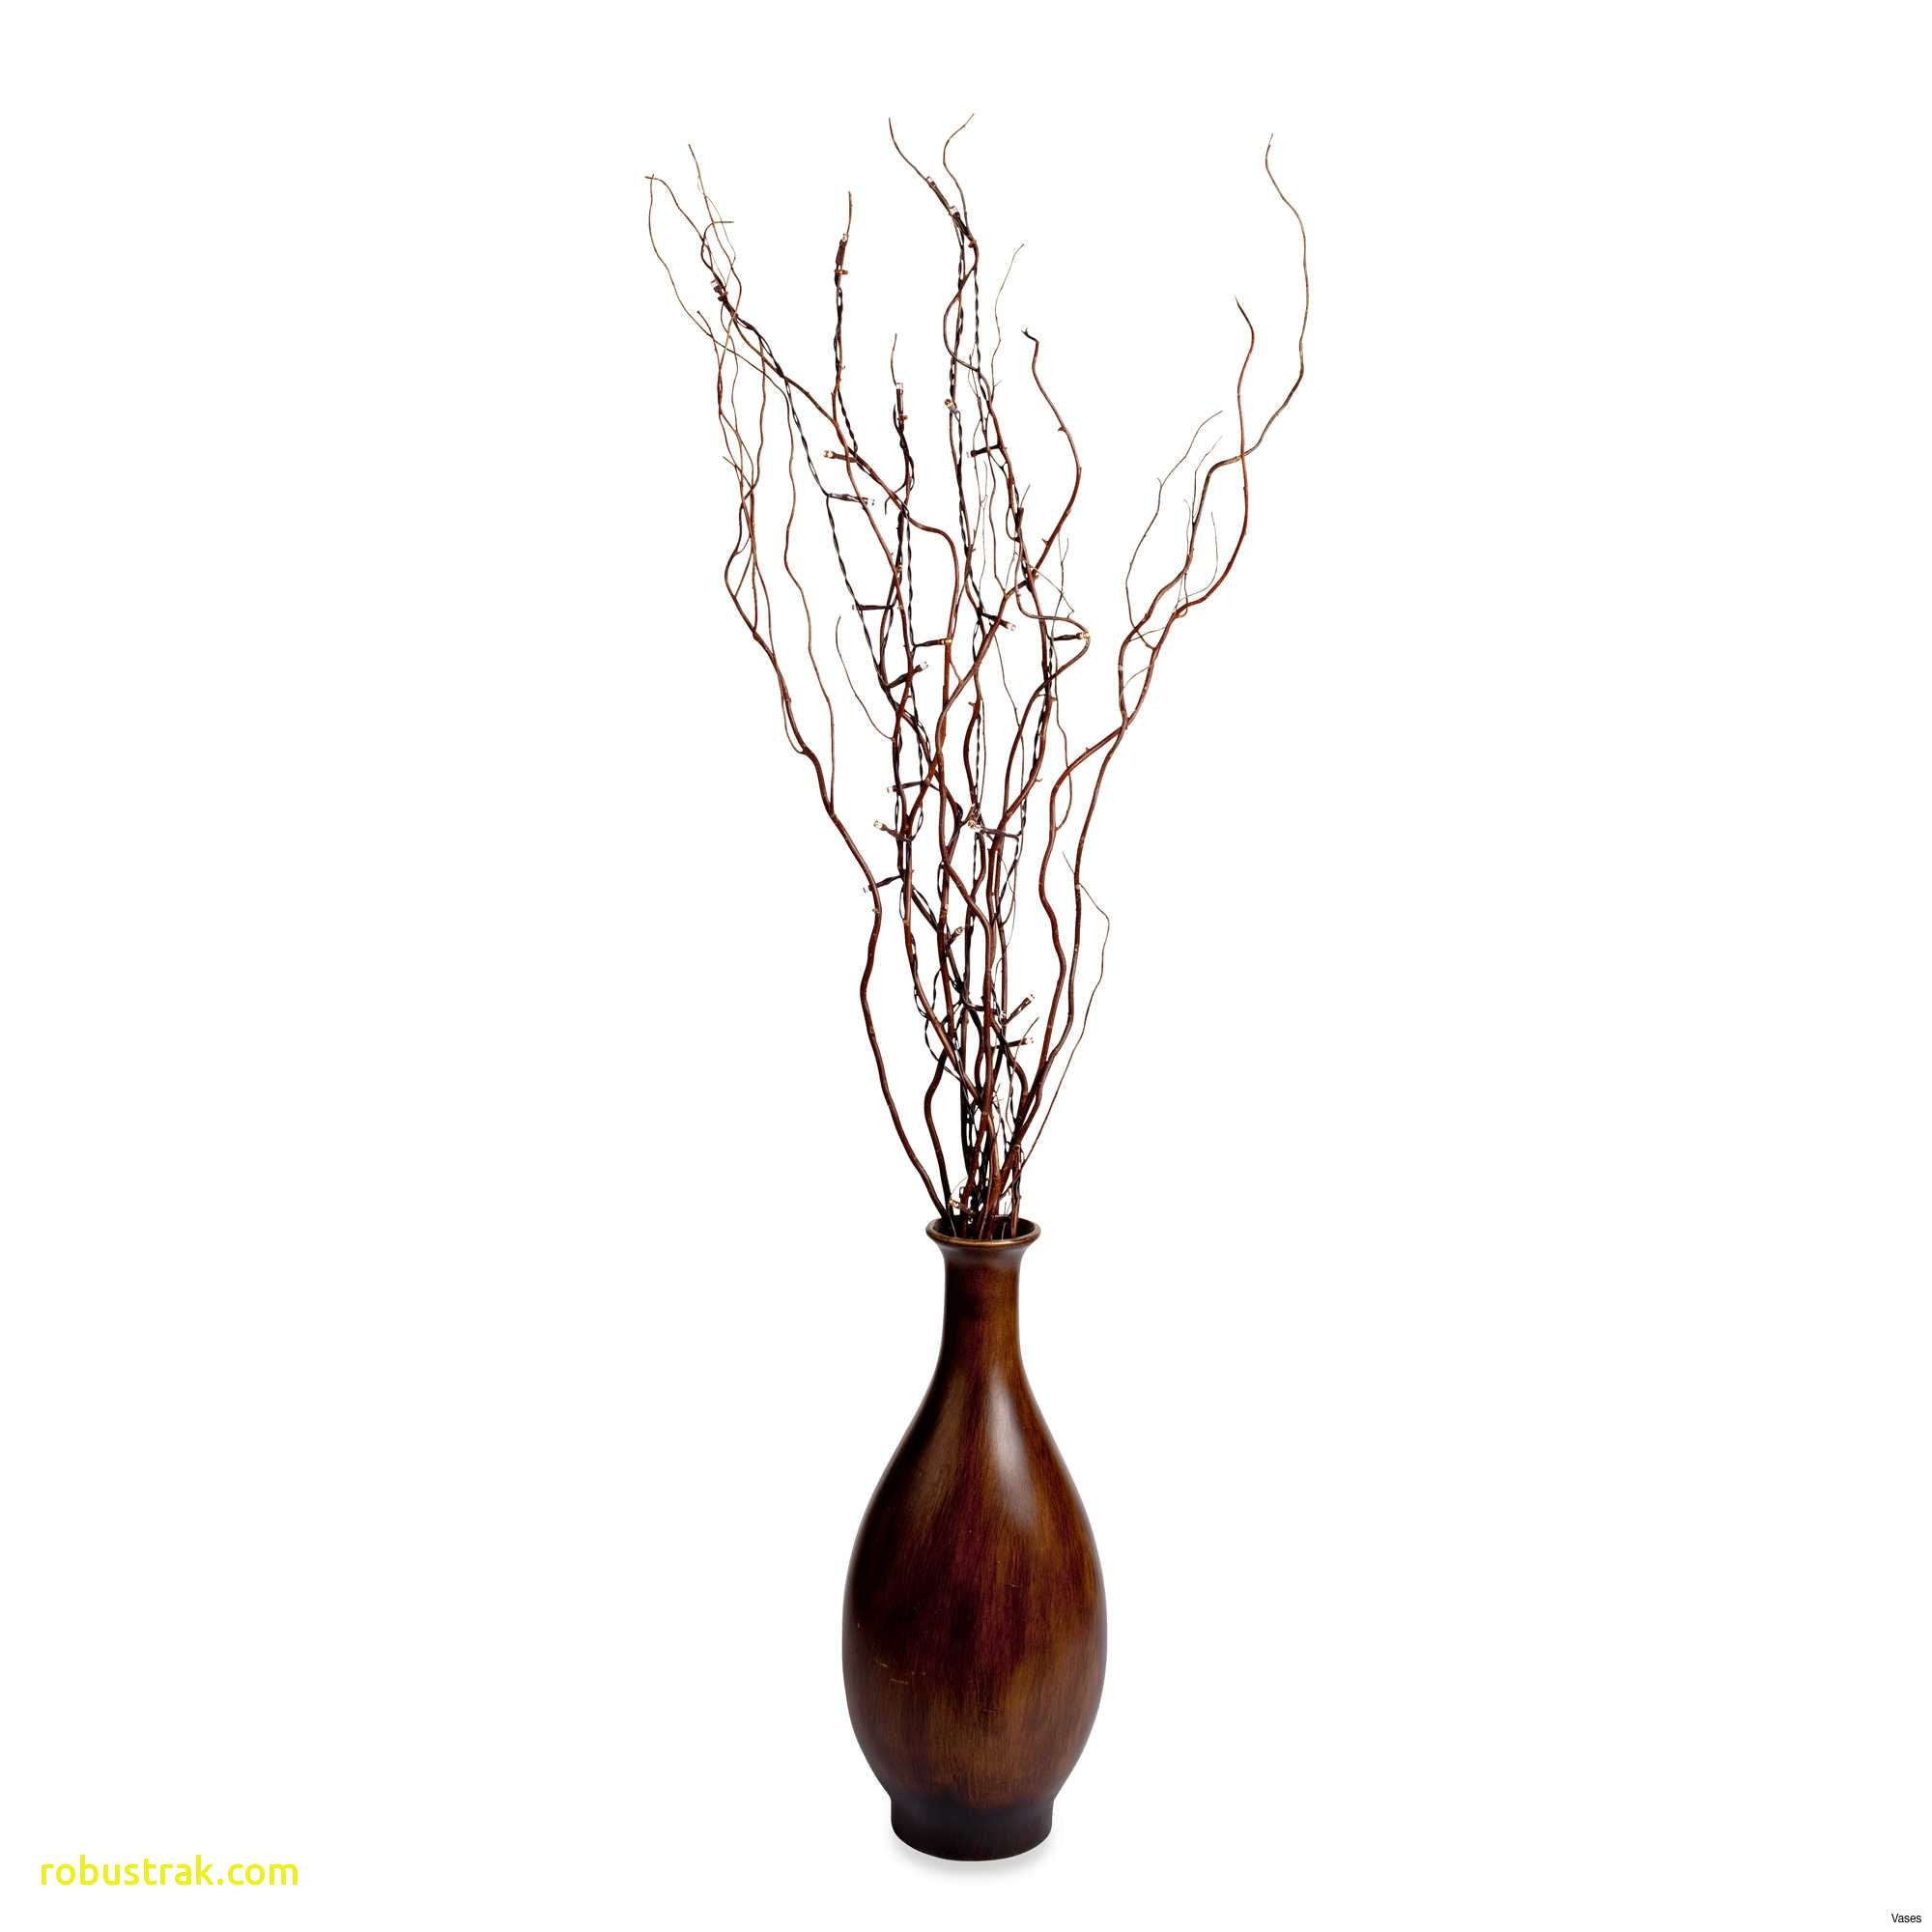 Buy Floor Vases Online Of Inspirational Decor Sticks In A Vase Home Design Ideas Intended for Brown Lighted Branches Matched with Home Accessories Ideas Vase Sticks Luxury Standing Tableh Vases Decorative In